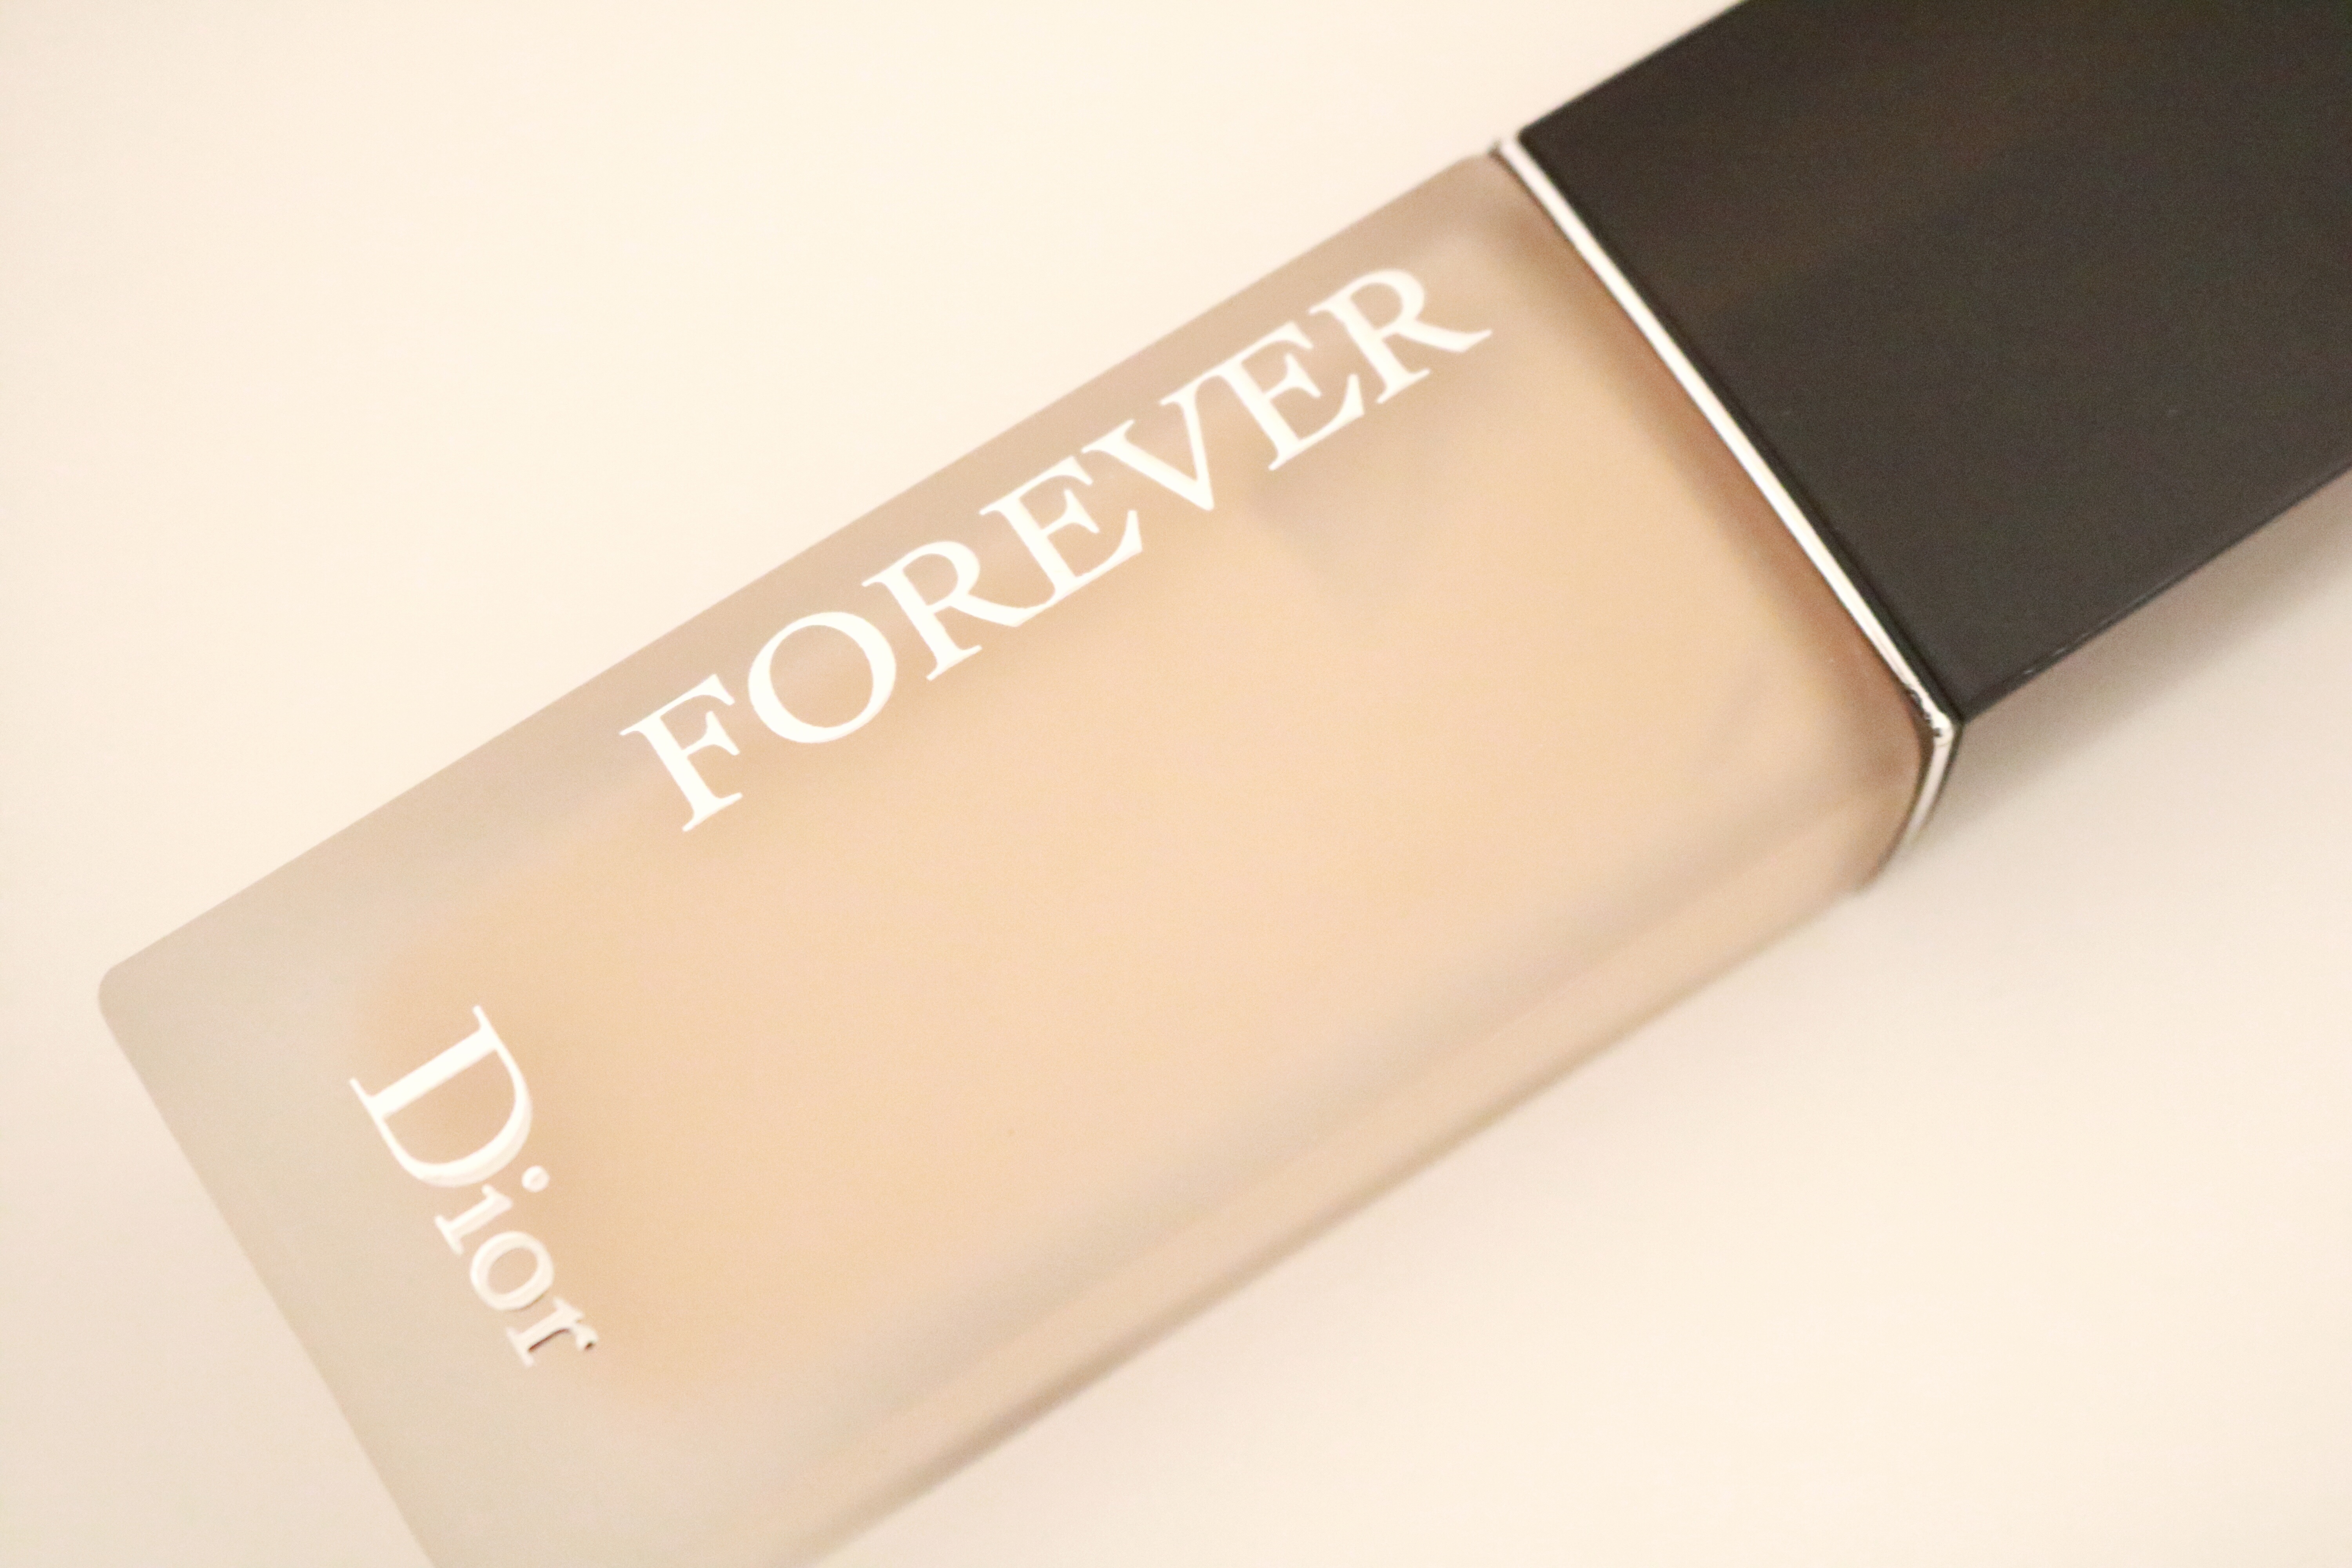 Dior Forever foundation